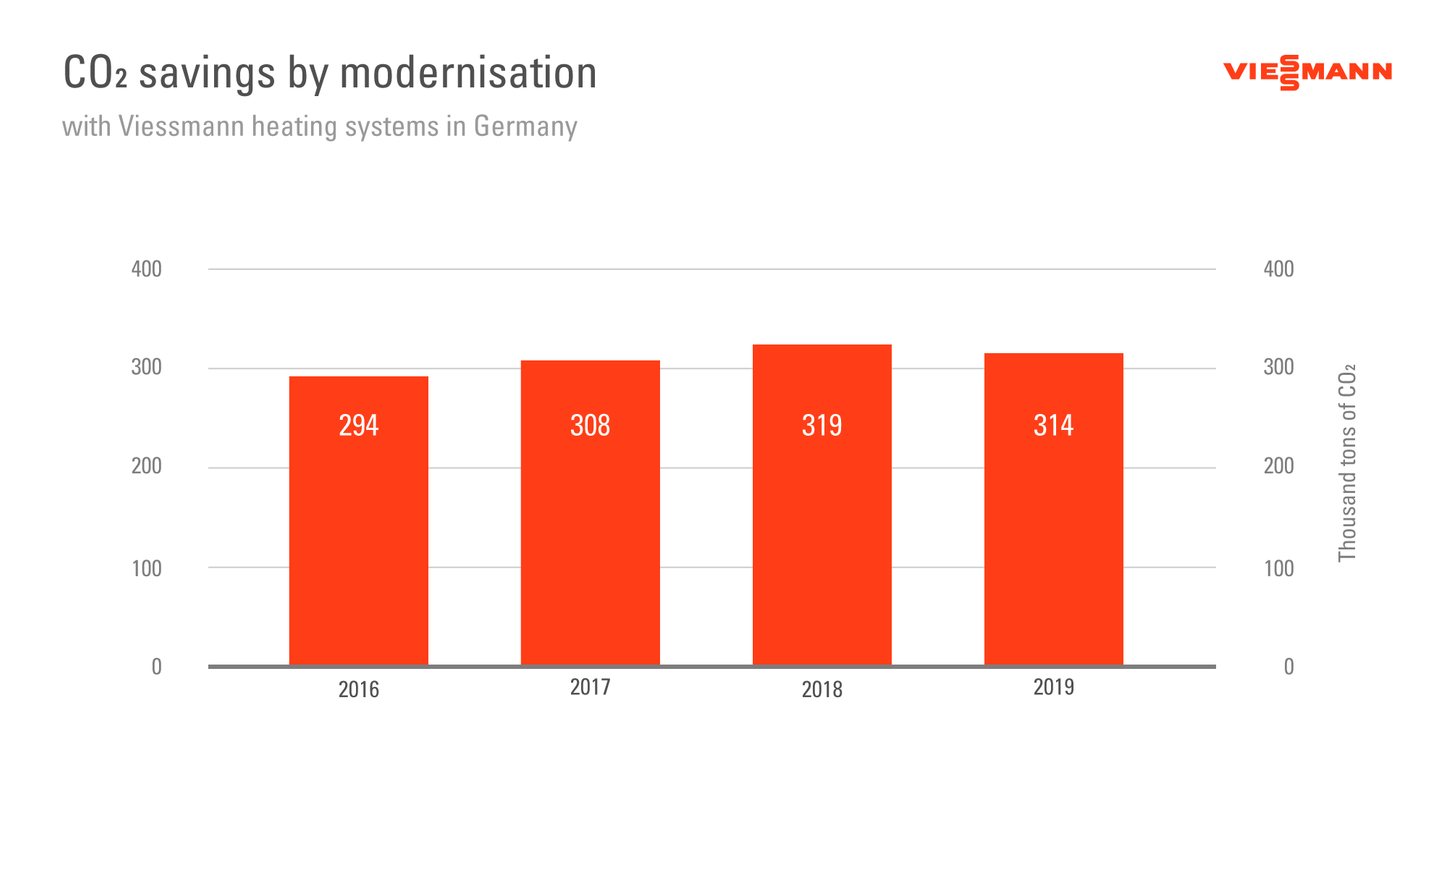 The graphic shows the CO2 savings achieved by modernisation using Viessmann heat sources.